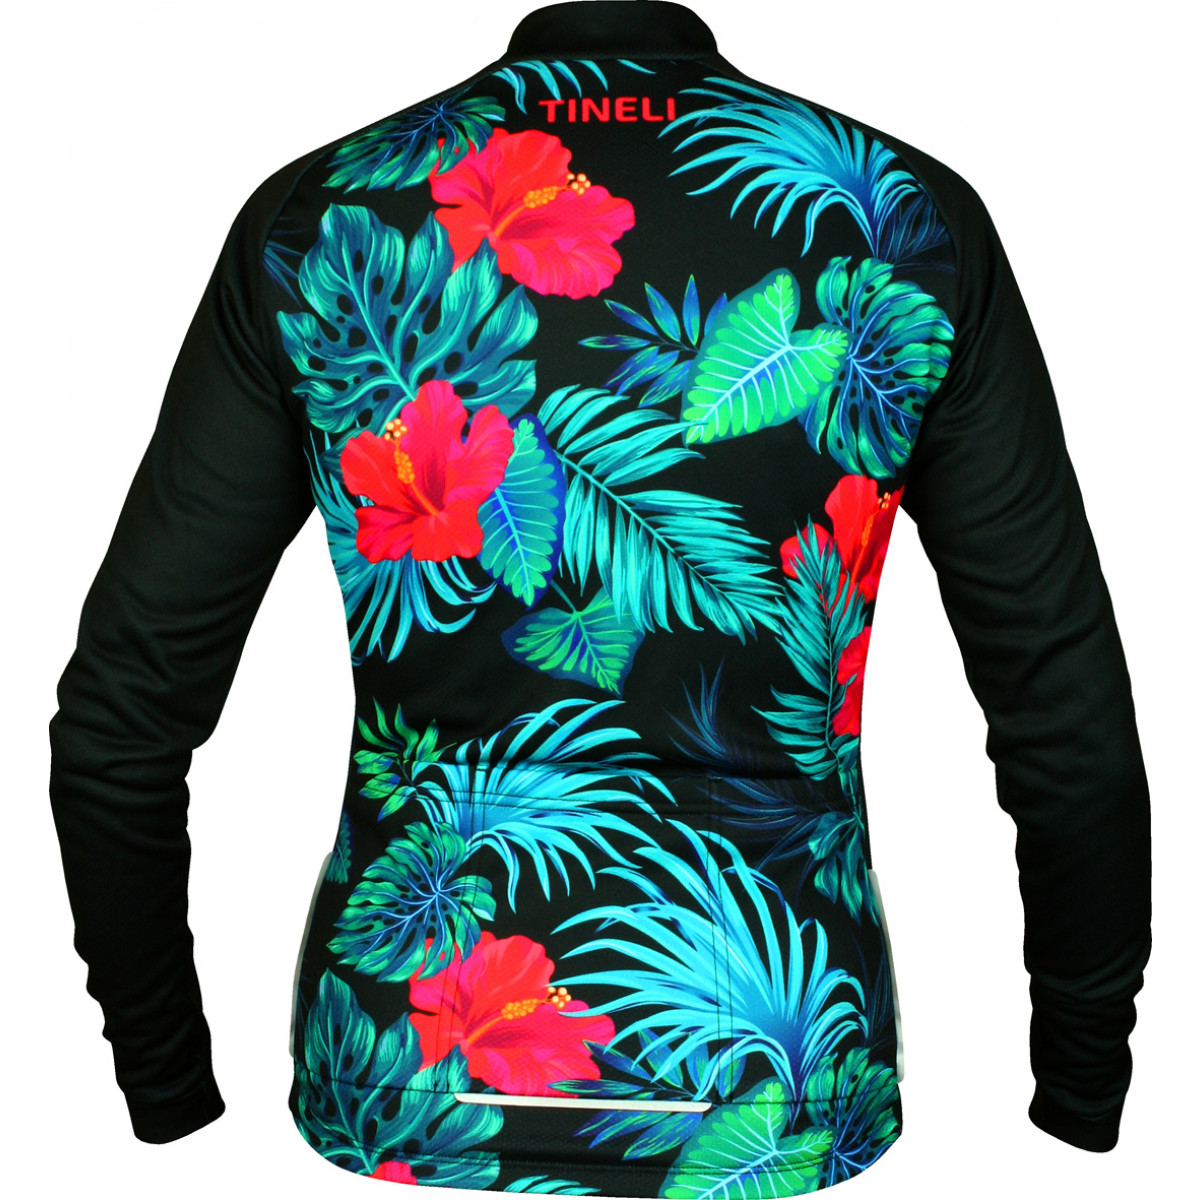 459 tropical intermediate back cutout Tropical Intermediate Jacket